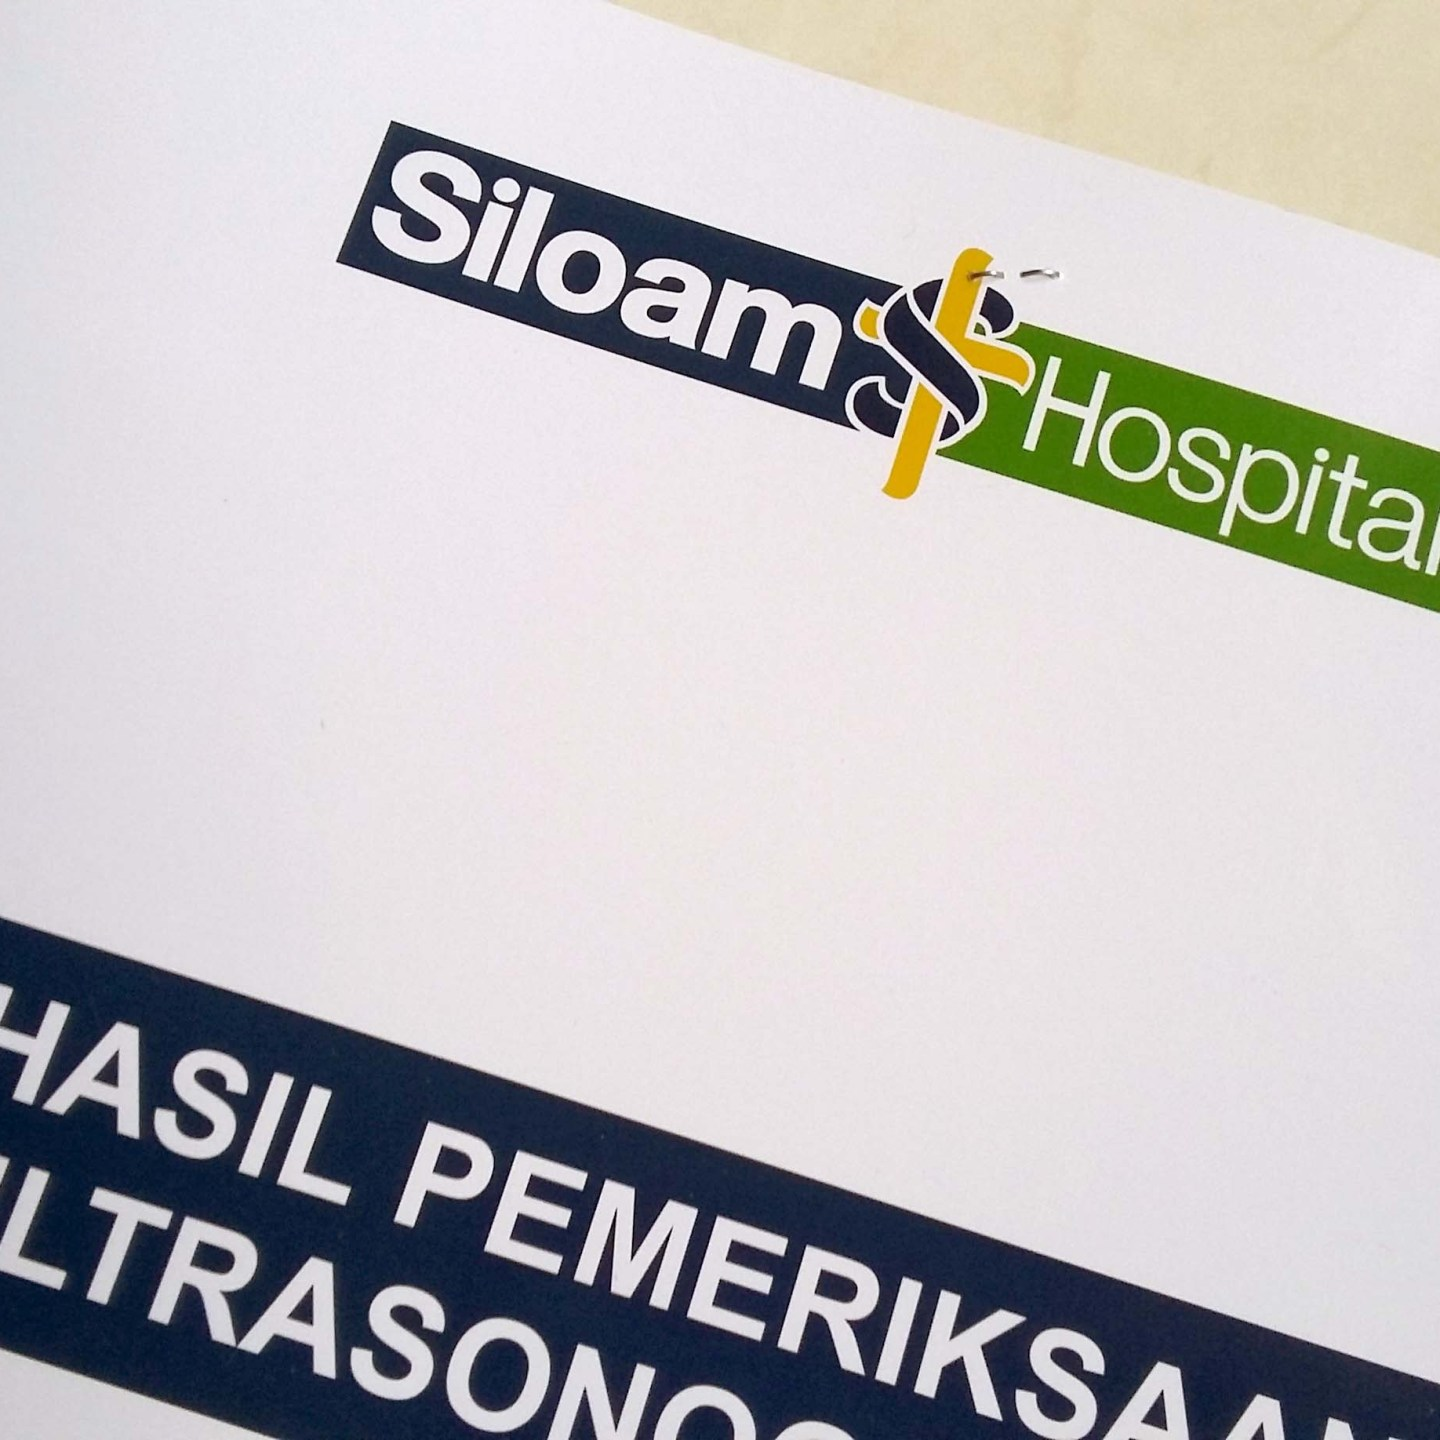 The fiasco of a BPJS doctor's appointment at Siloam